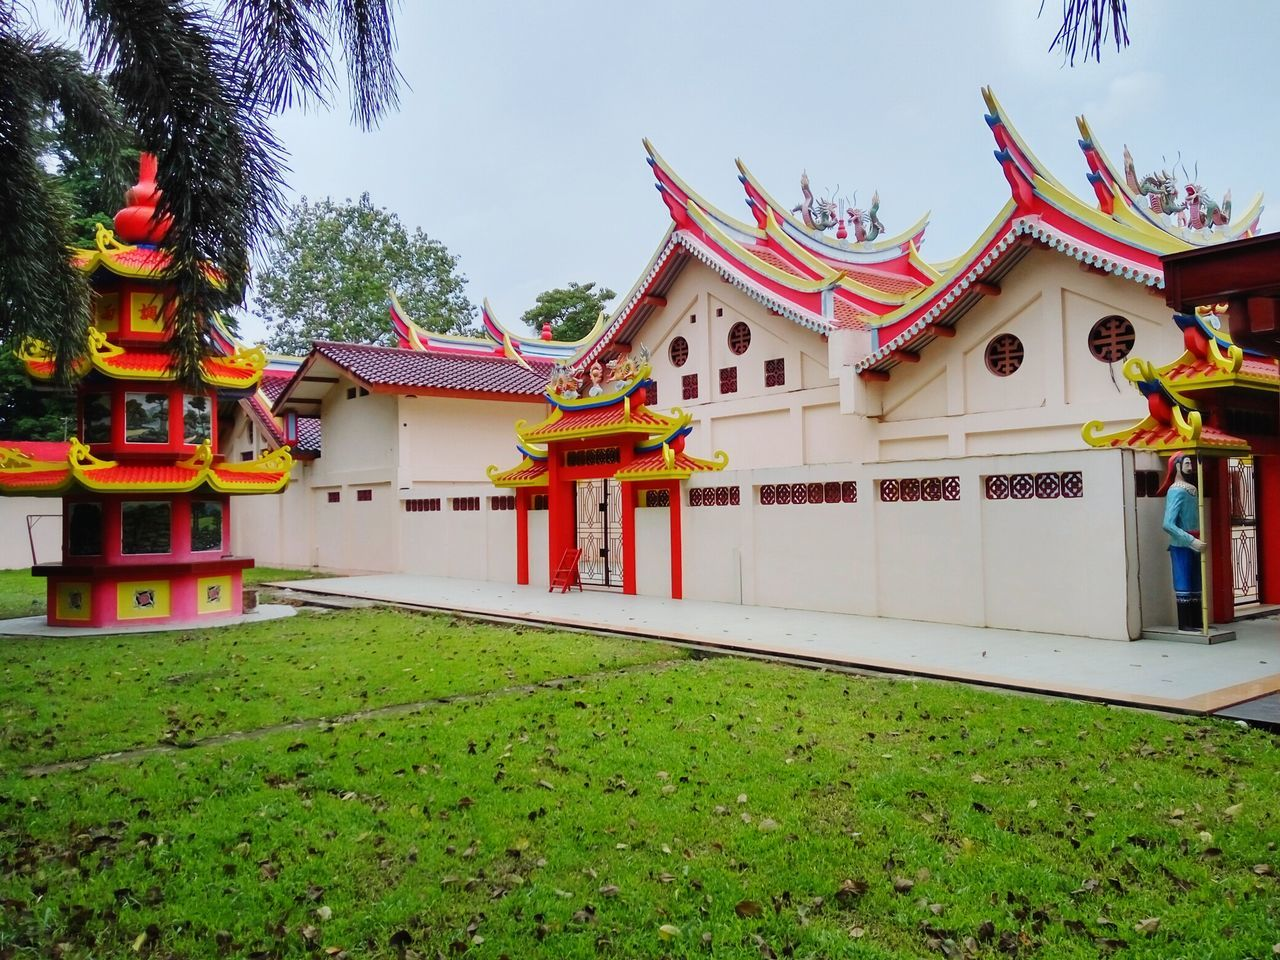 Buddhist Temple, Kemaro Island, Palembang, Indonesia Architecture Travel Destinations Tradition Place Of Worship Cultures Outdoors Tourism Religion No People Building Exterior Built Structure Pagoda Building